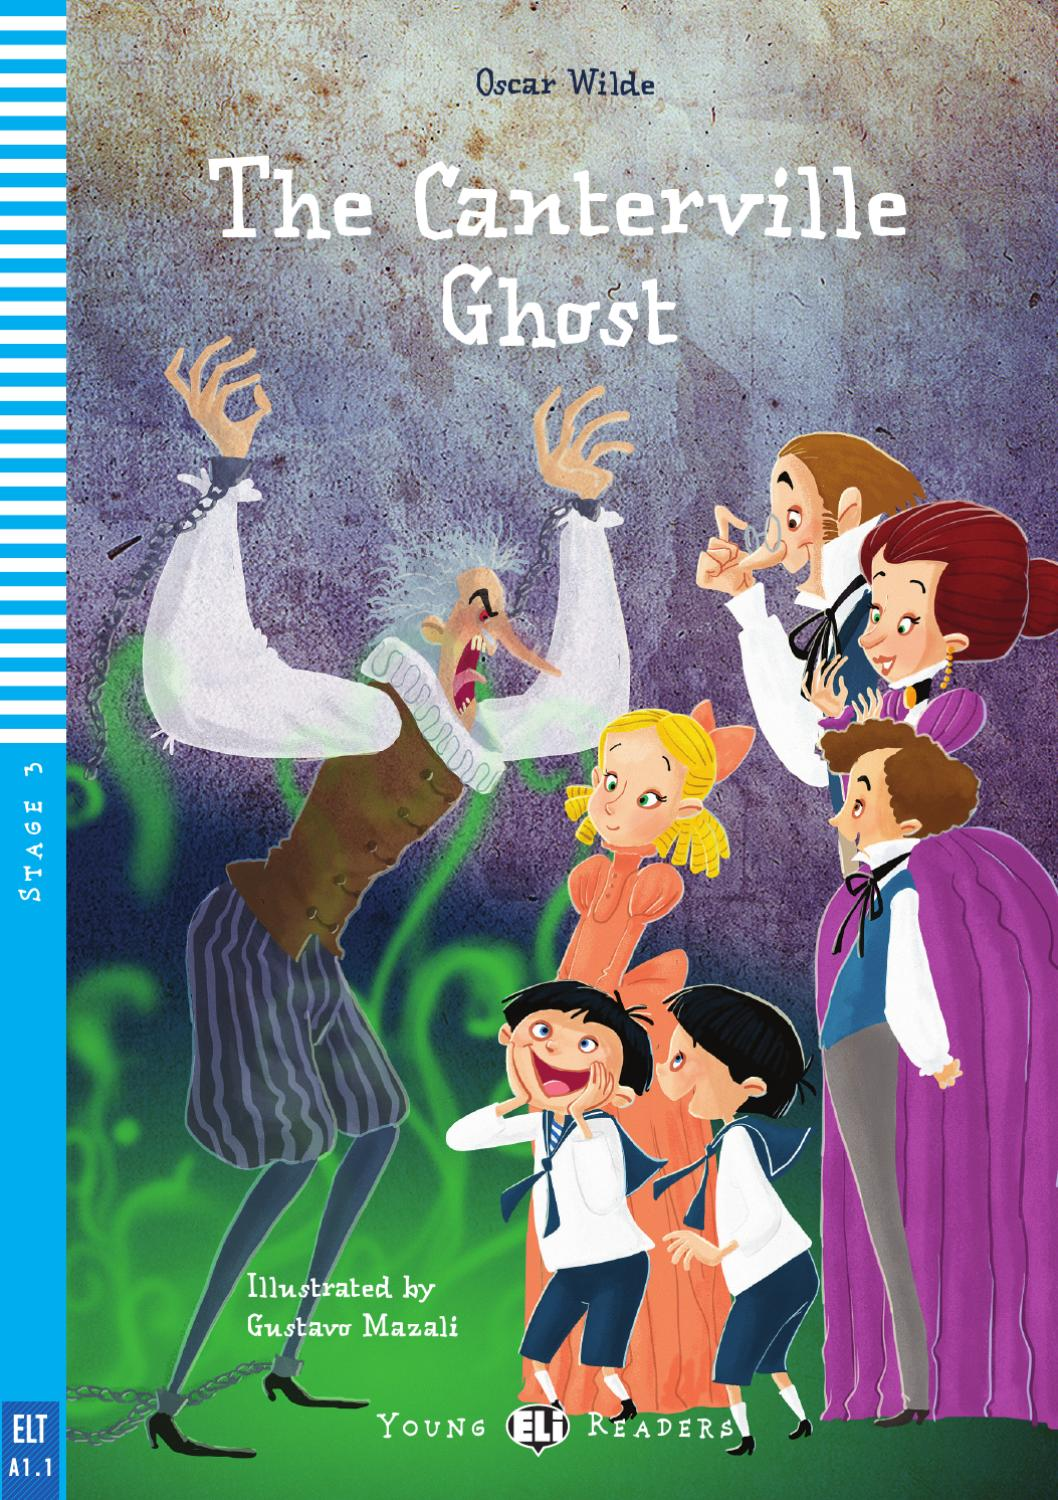 CantervilleGhost_web by ELI Publishing - Issuu